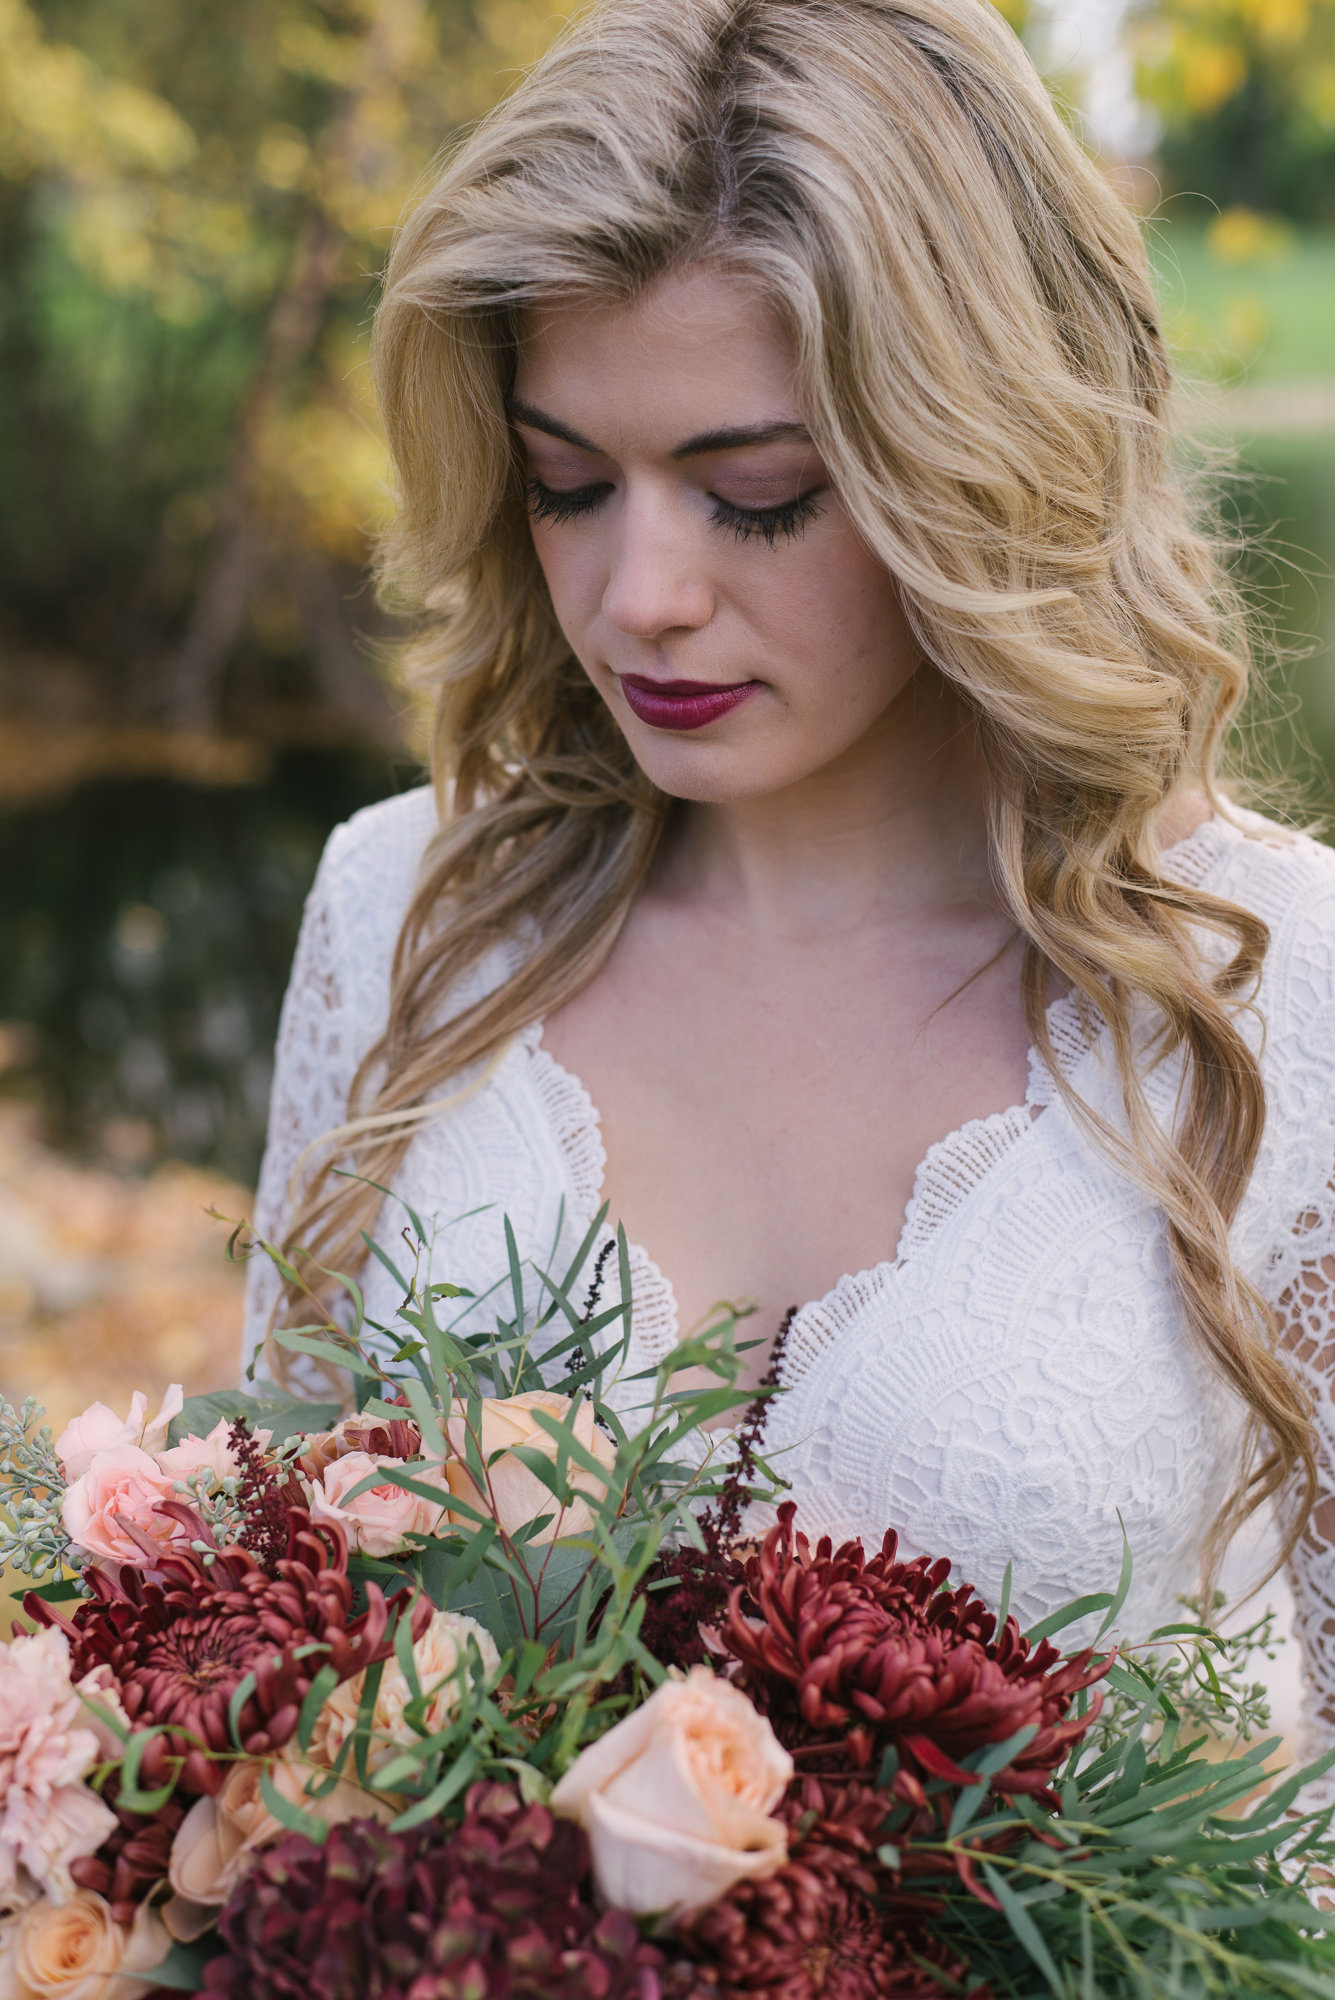 When the lips match the flowers! ON POINT! Love this makeup look for the bride. Who knew that spider mums could look so lush and rich? Love this blend of flowers and lace.